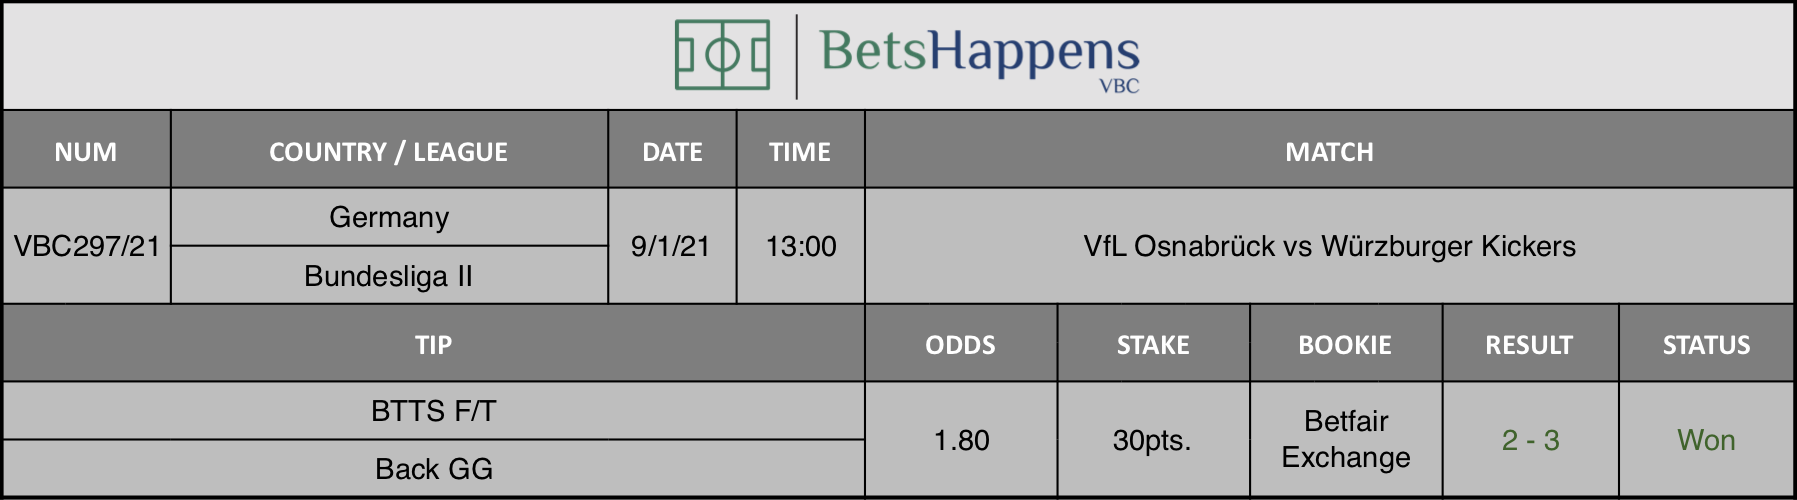 Results of our tip for the VfL Osnabrück vs Würzburger Kickers  match where BTTS F/T  Back GG is recommended.